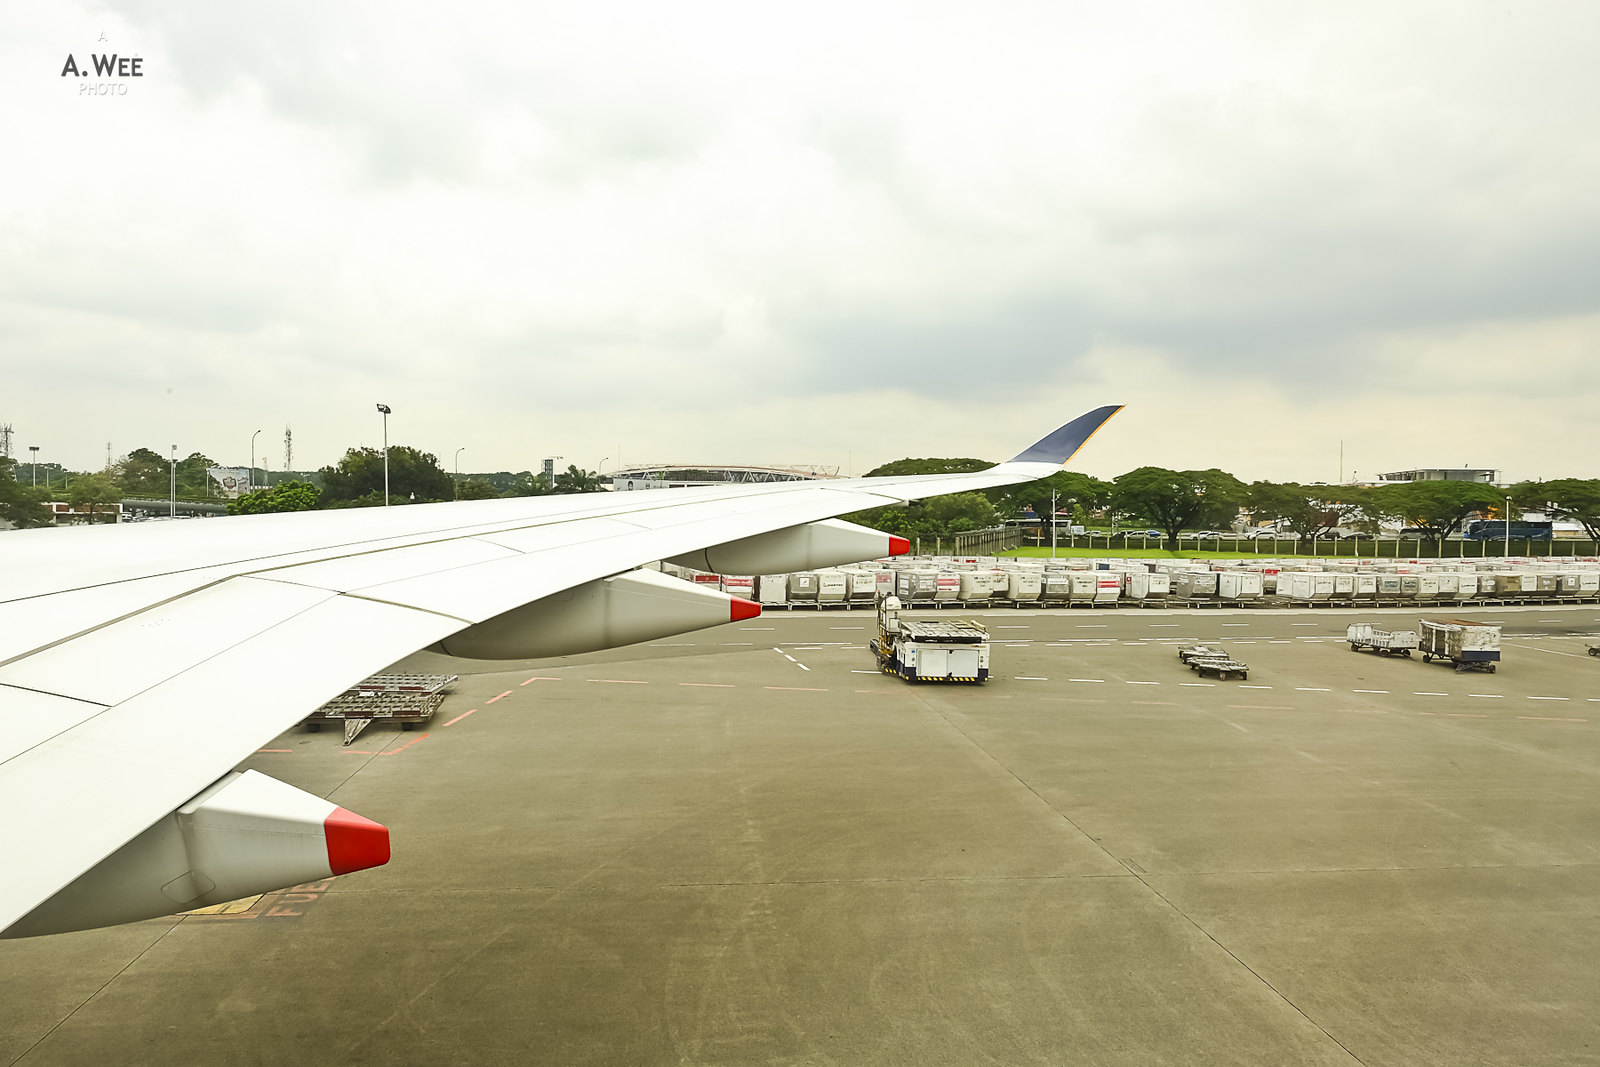 View of the A350 wing